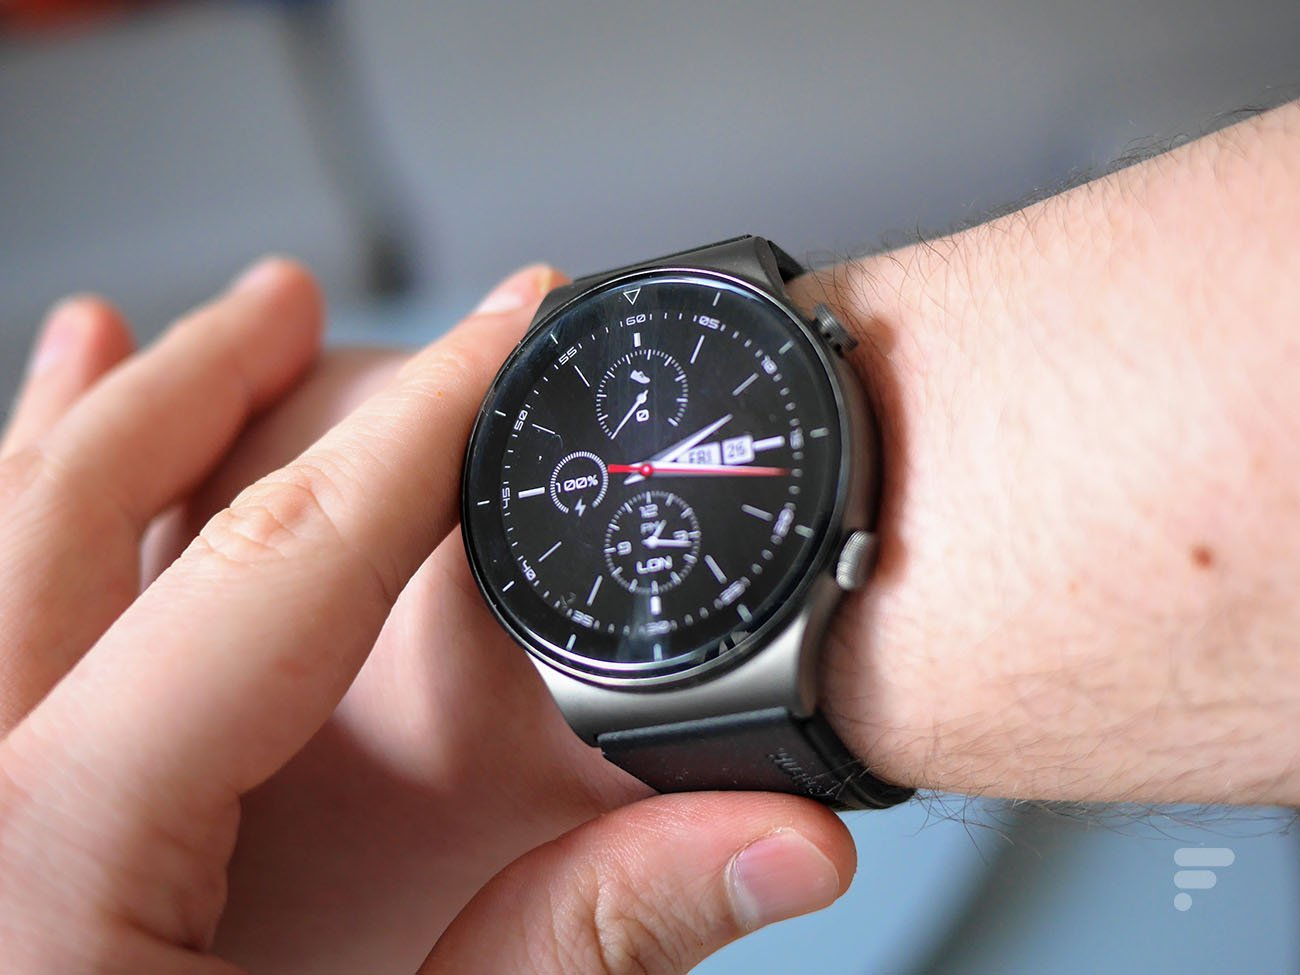 Test de la Huawei Watch GT 2 Pro : une montre connectée sobre, mais endurante